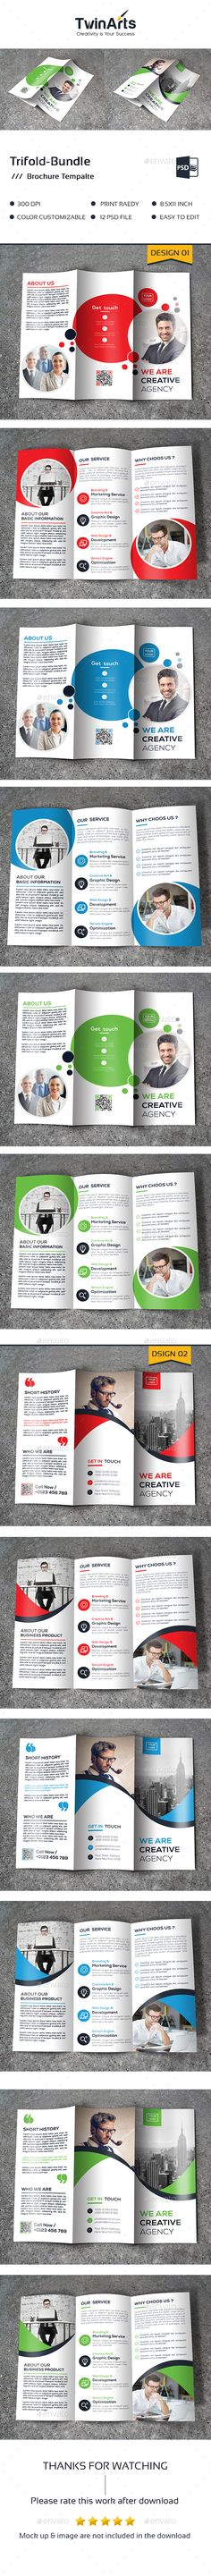 2 Trifold Brochure Templates PSD. Download here: https://graphicriver.net/item/trifold-bundle_2-in-1/17599849?ref=ksioks